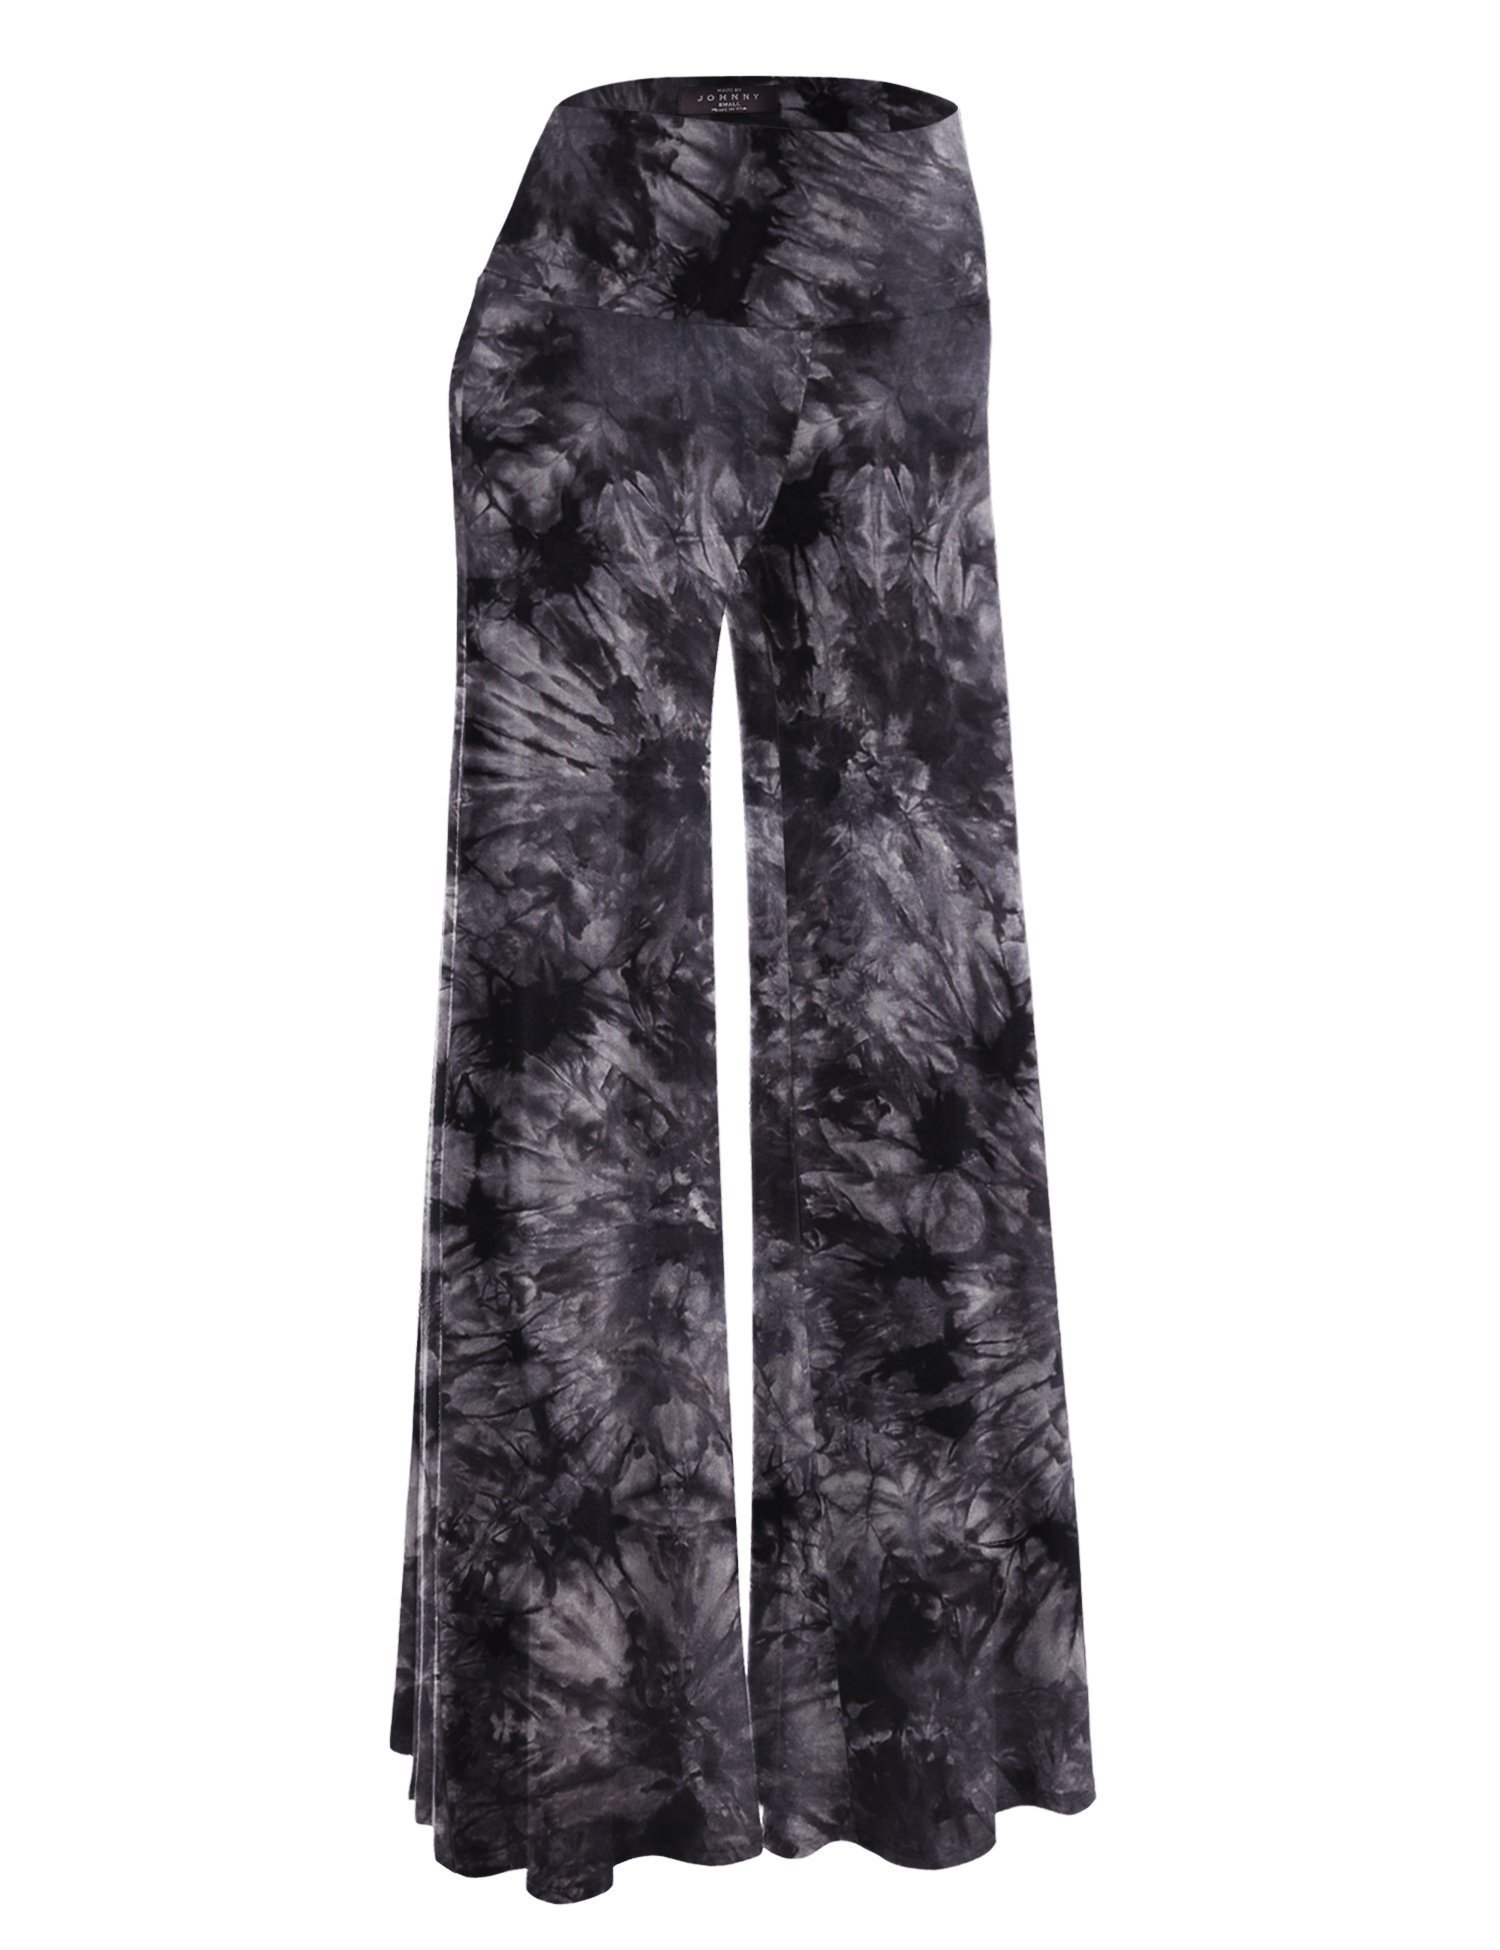 Made By Johnny WB1060 Womens Chic Tie Dye Palazzo Pants L Black